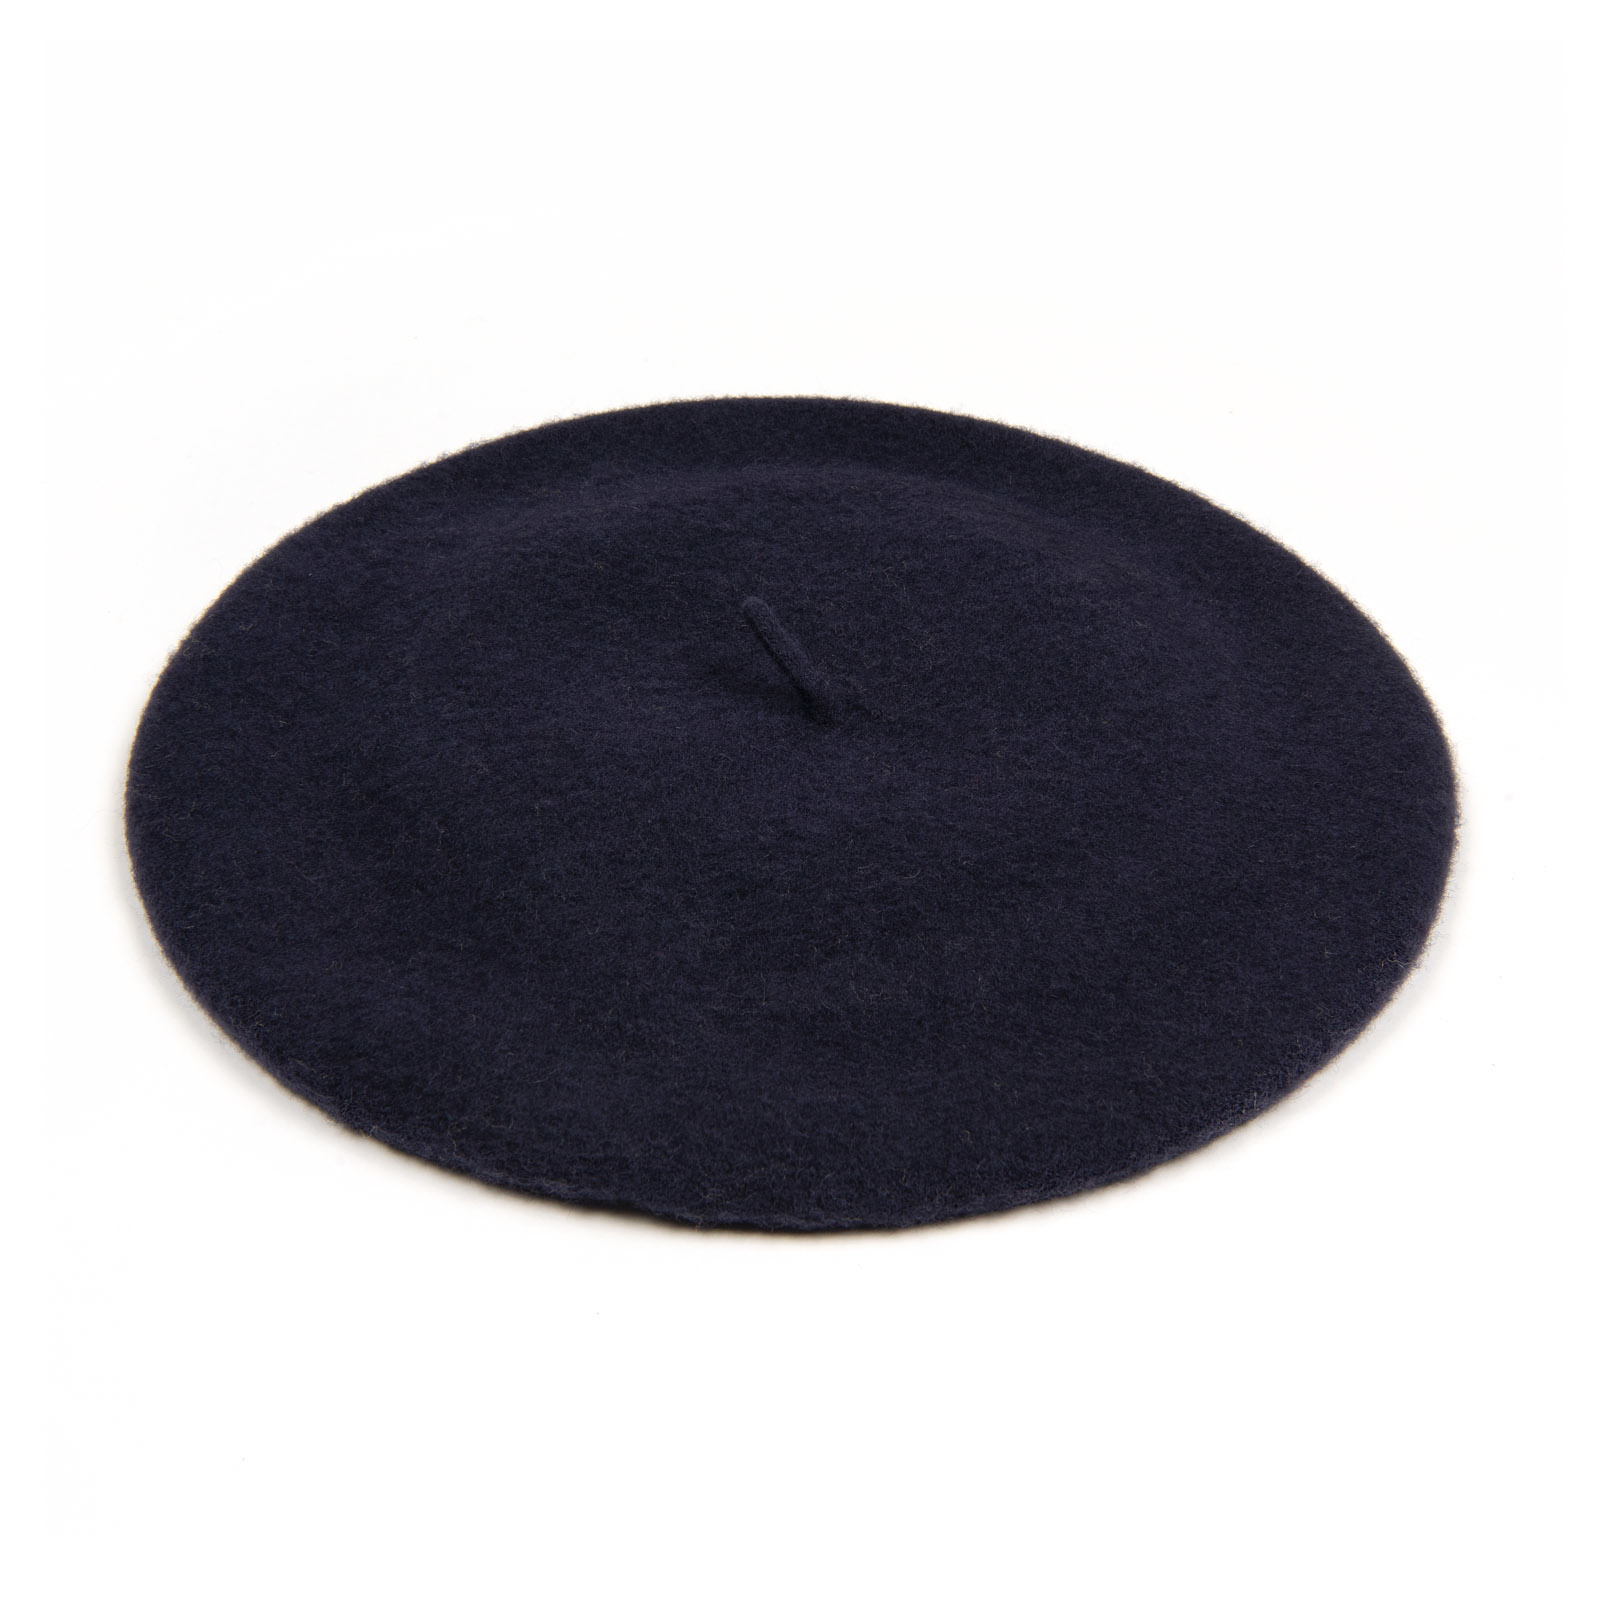 Parkhurst beret navy dark blue